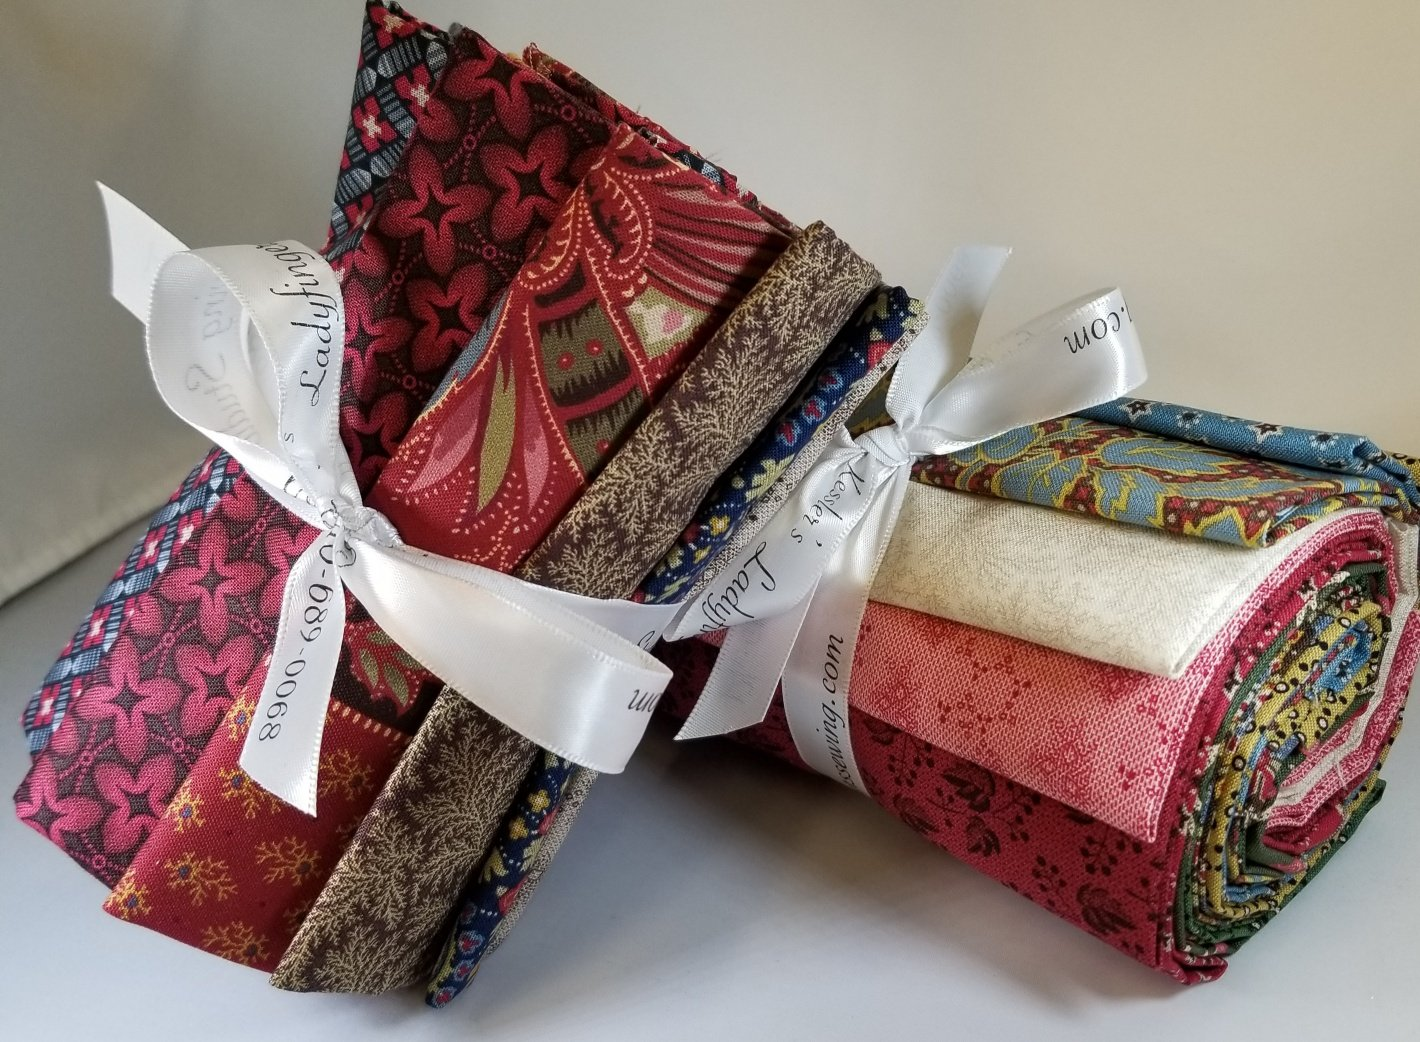 Baltimore House Fat Quarter Bundle A (10 FQ's)